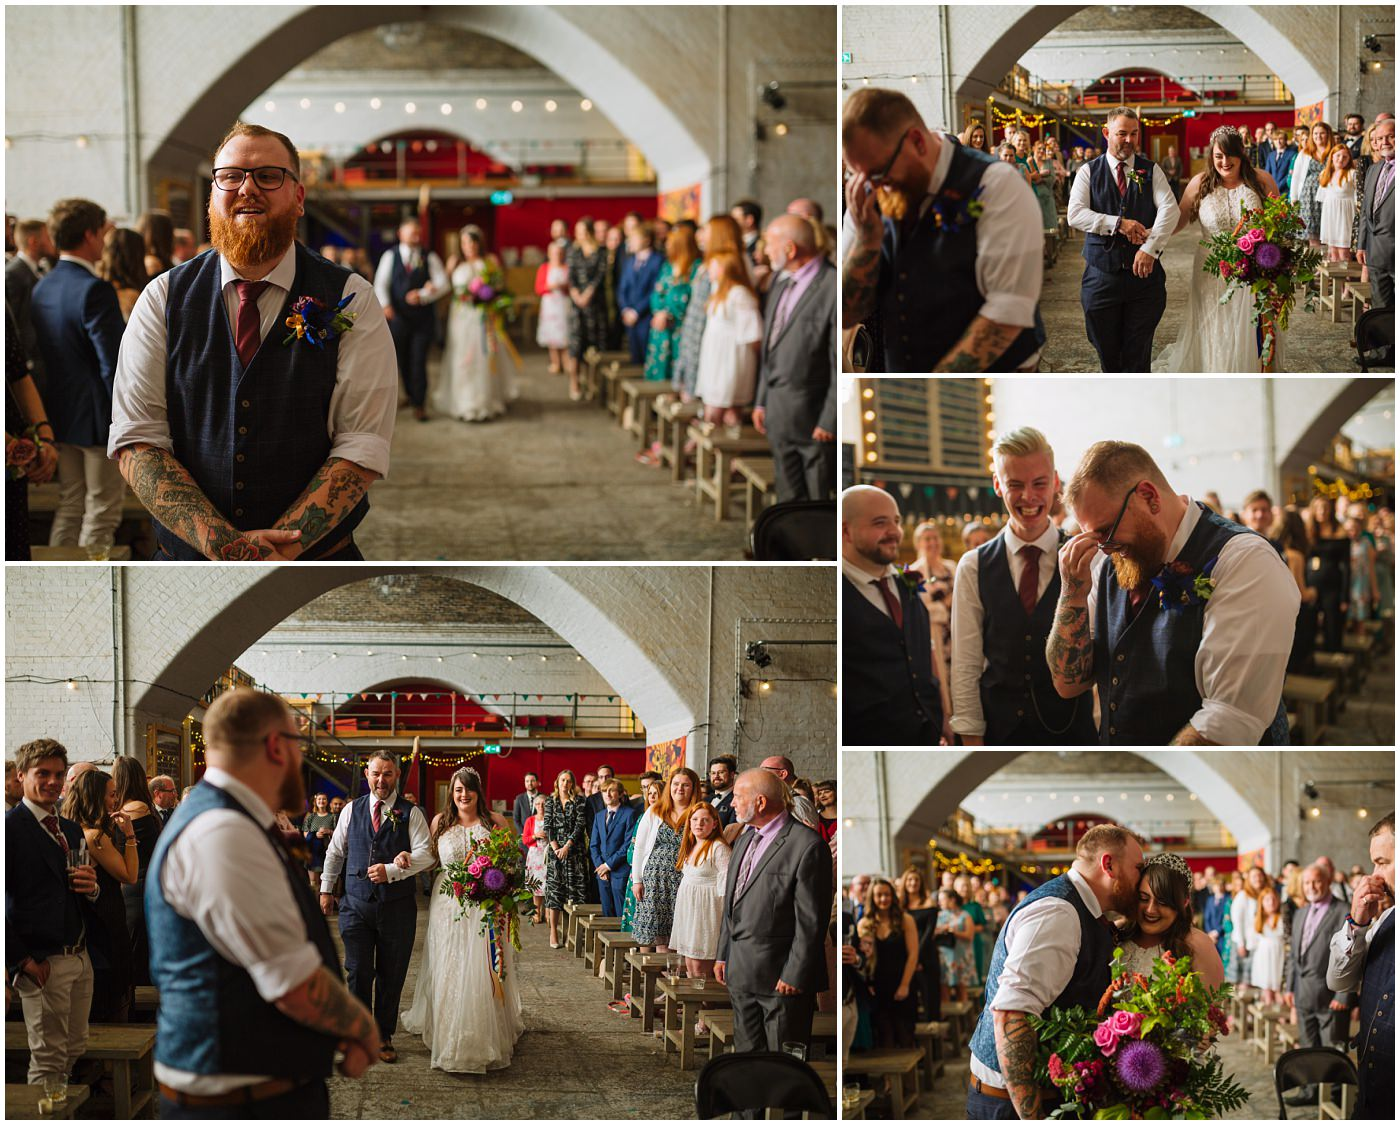 grooms emotional reaction to seeing bride for the first time at Fairfield Social Club wedding